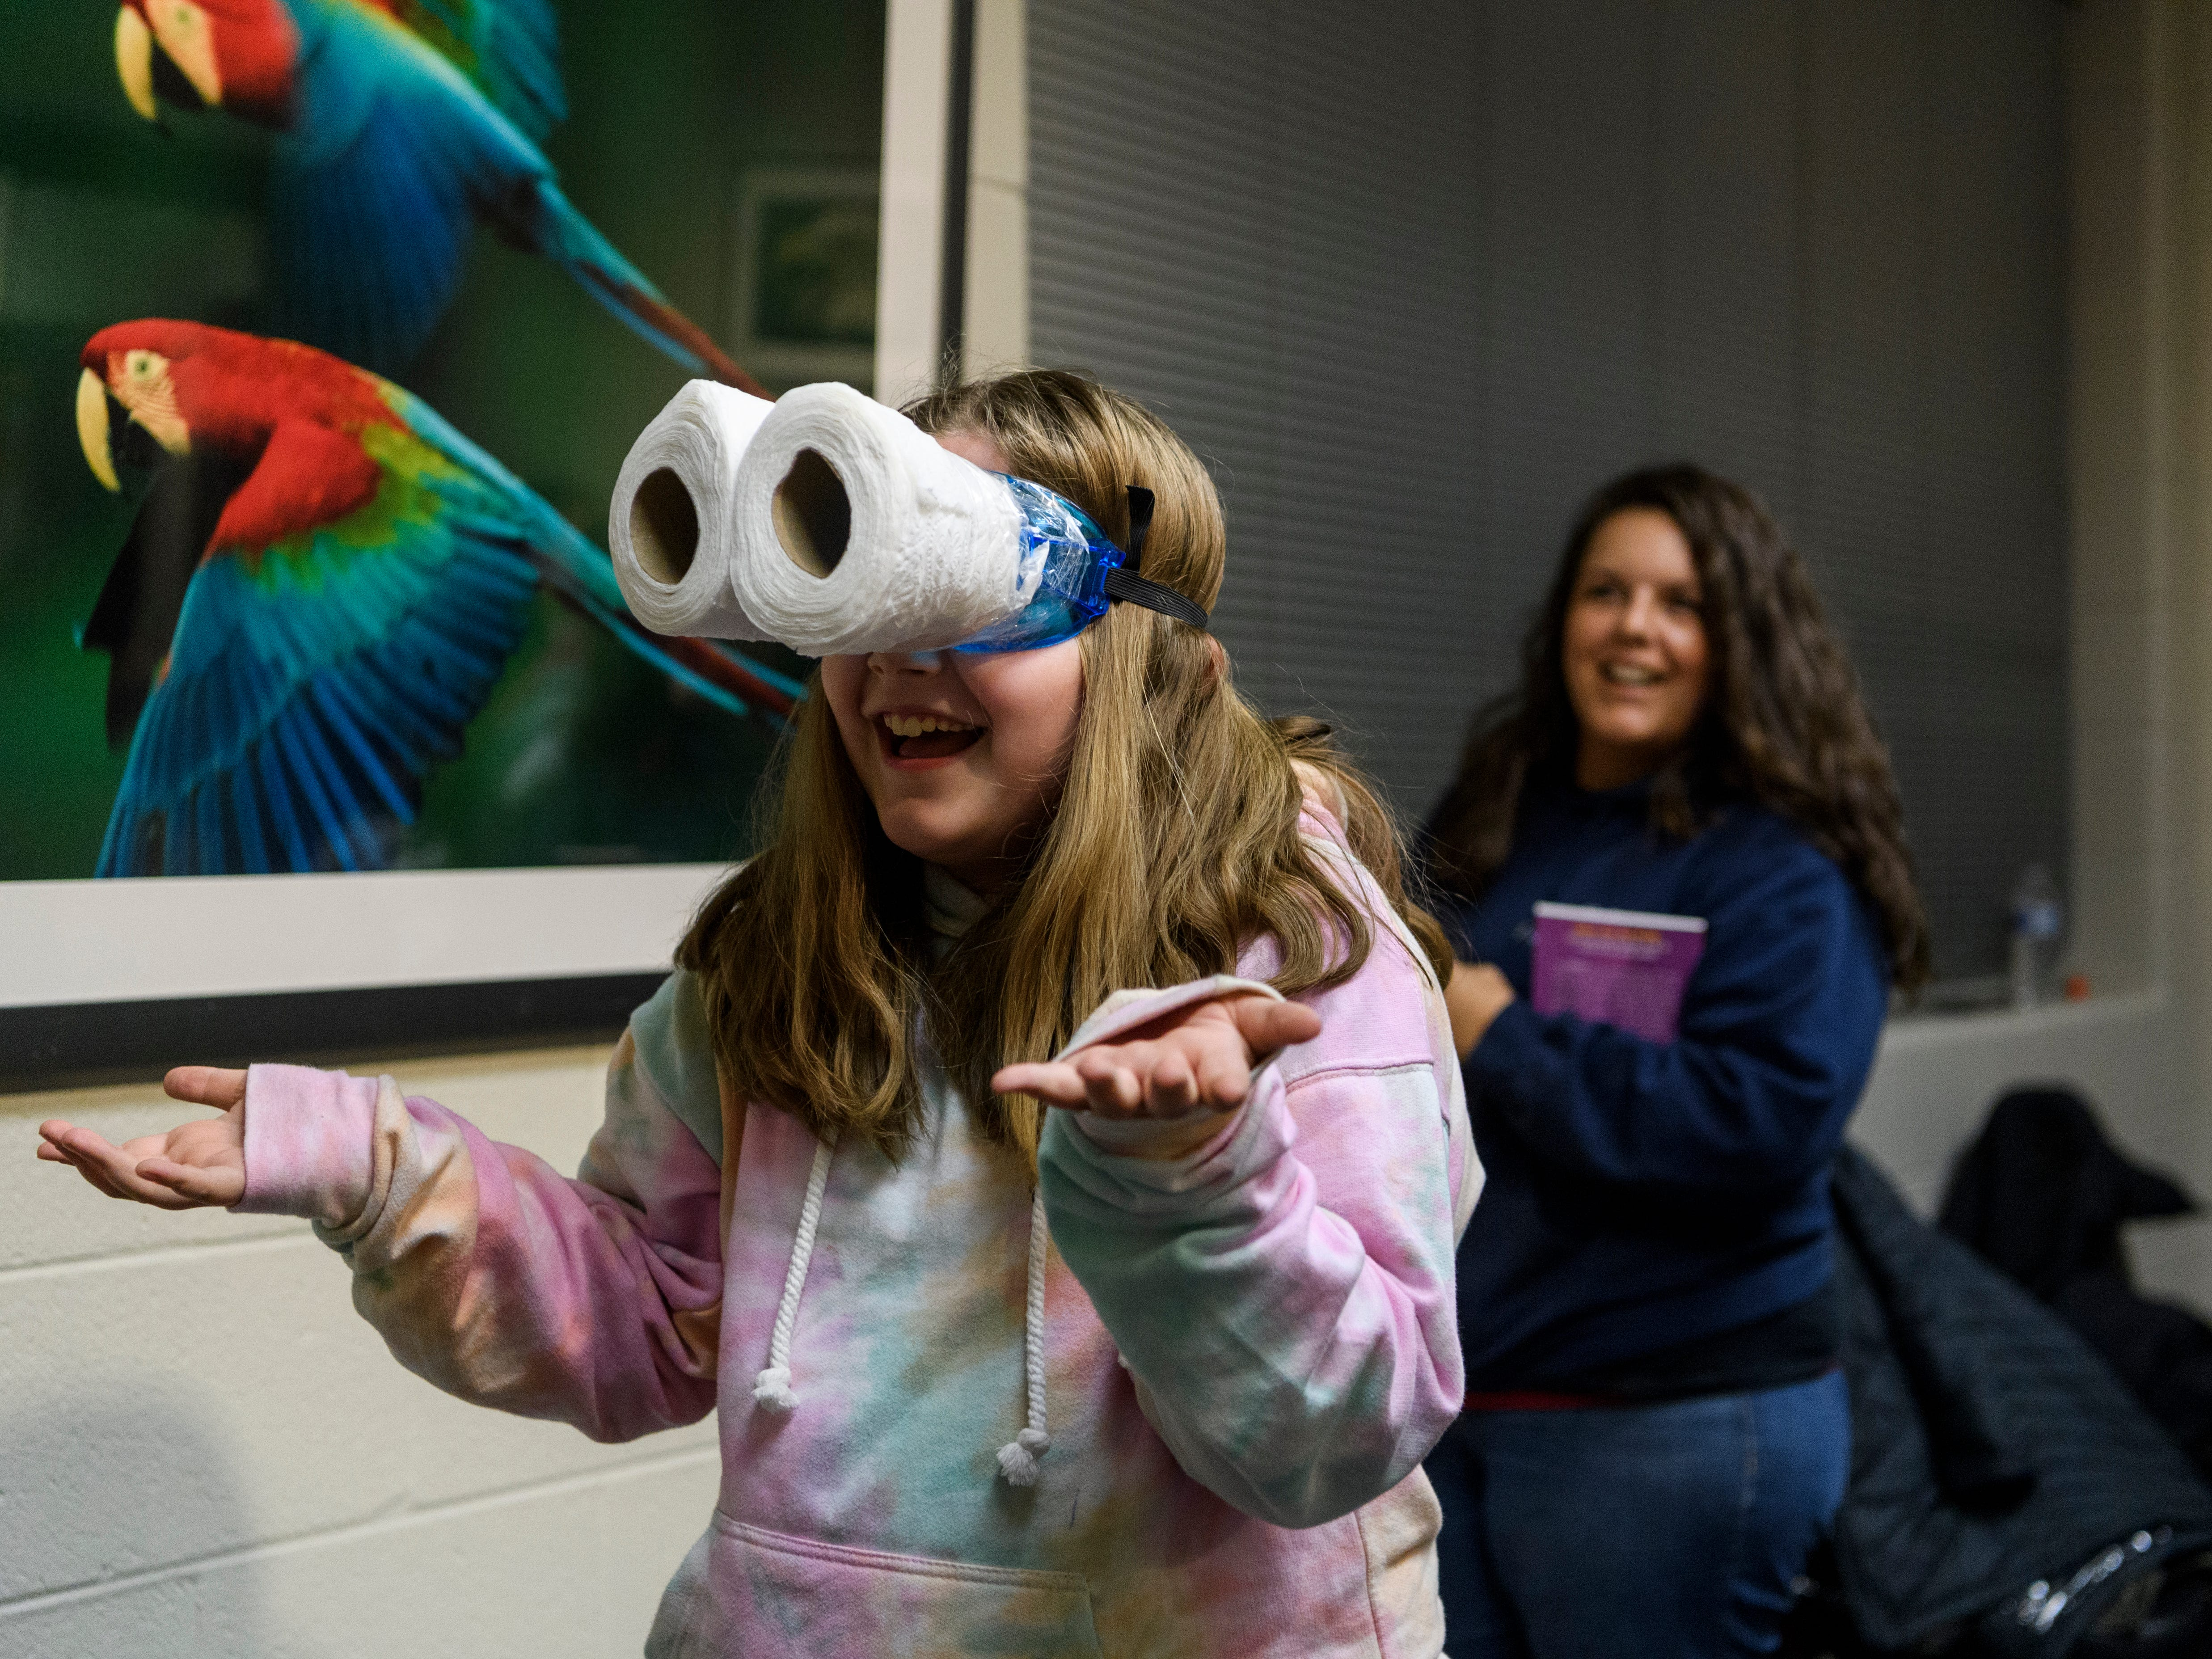 """Yazmin Oglesby, 10, a Cairo Elementary school student, laughs as she navigates """"owl vision googles"""" during a Family Night at the Henderson Community College's Preston Arts Center in Henderson, Ky., Thursday, Jan. 24, 2019. The event centered around a new National Geographic Photo Ark exhibit by photographer Joel Sartore, which will be on display for the public until March 15"""